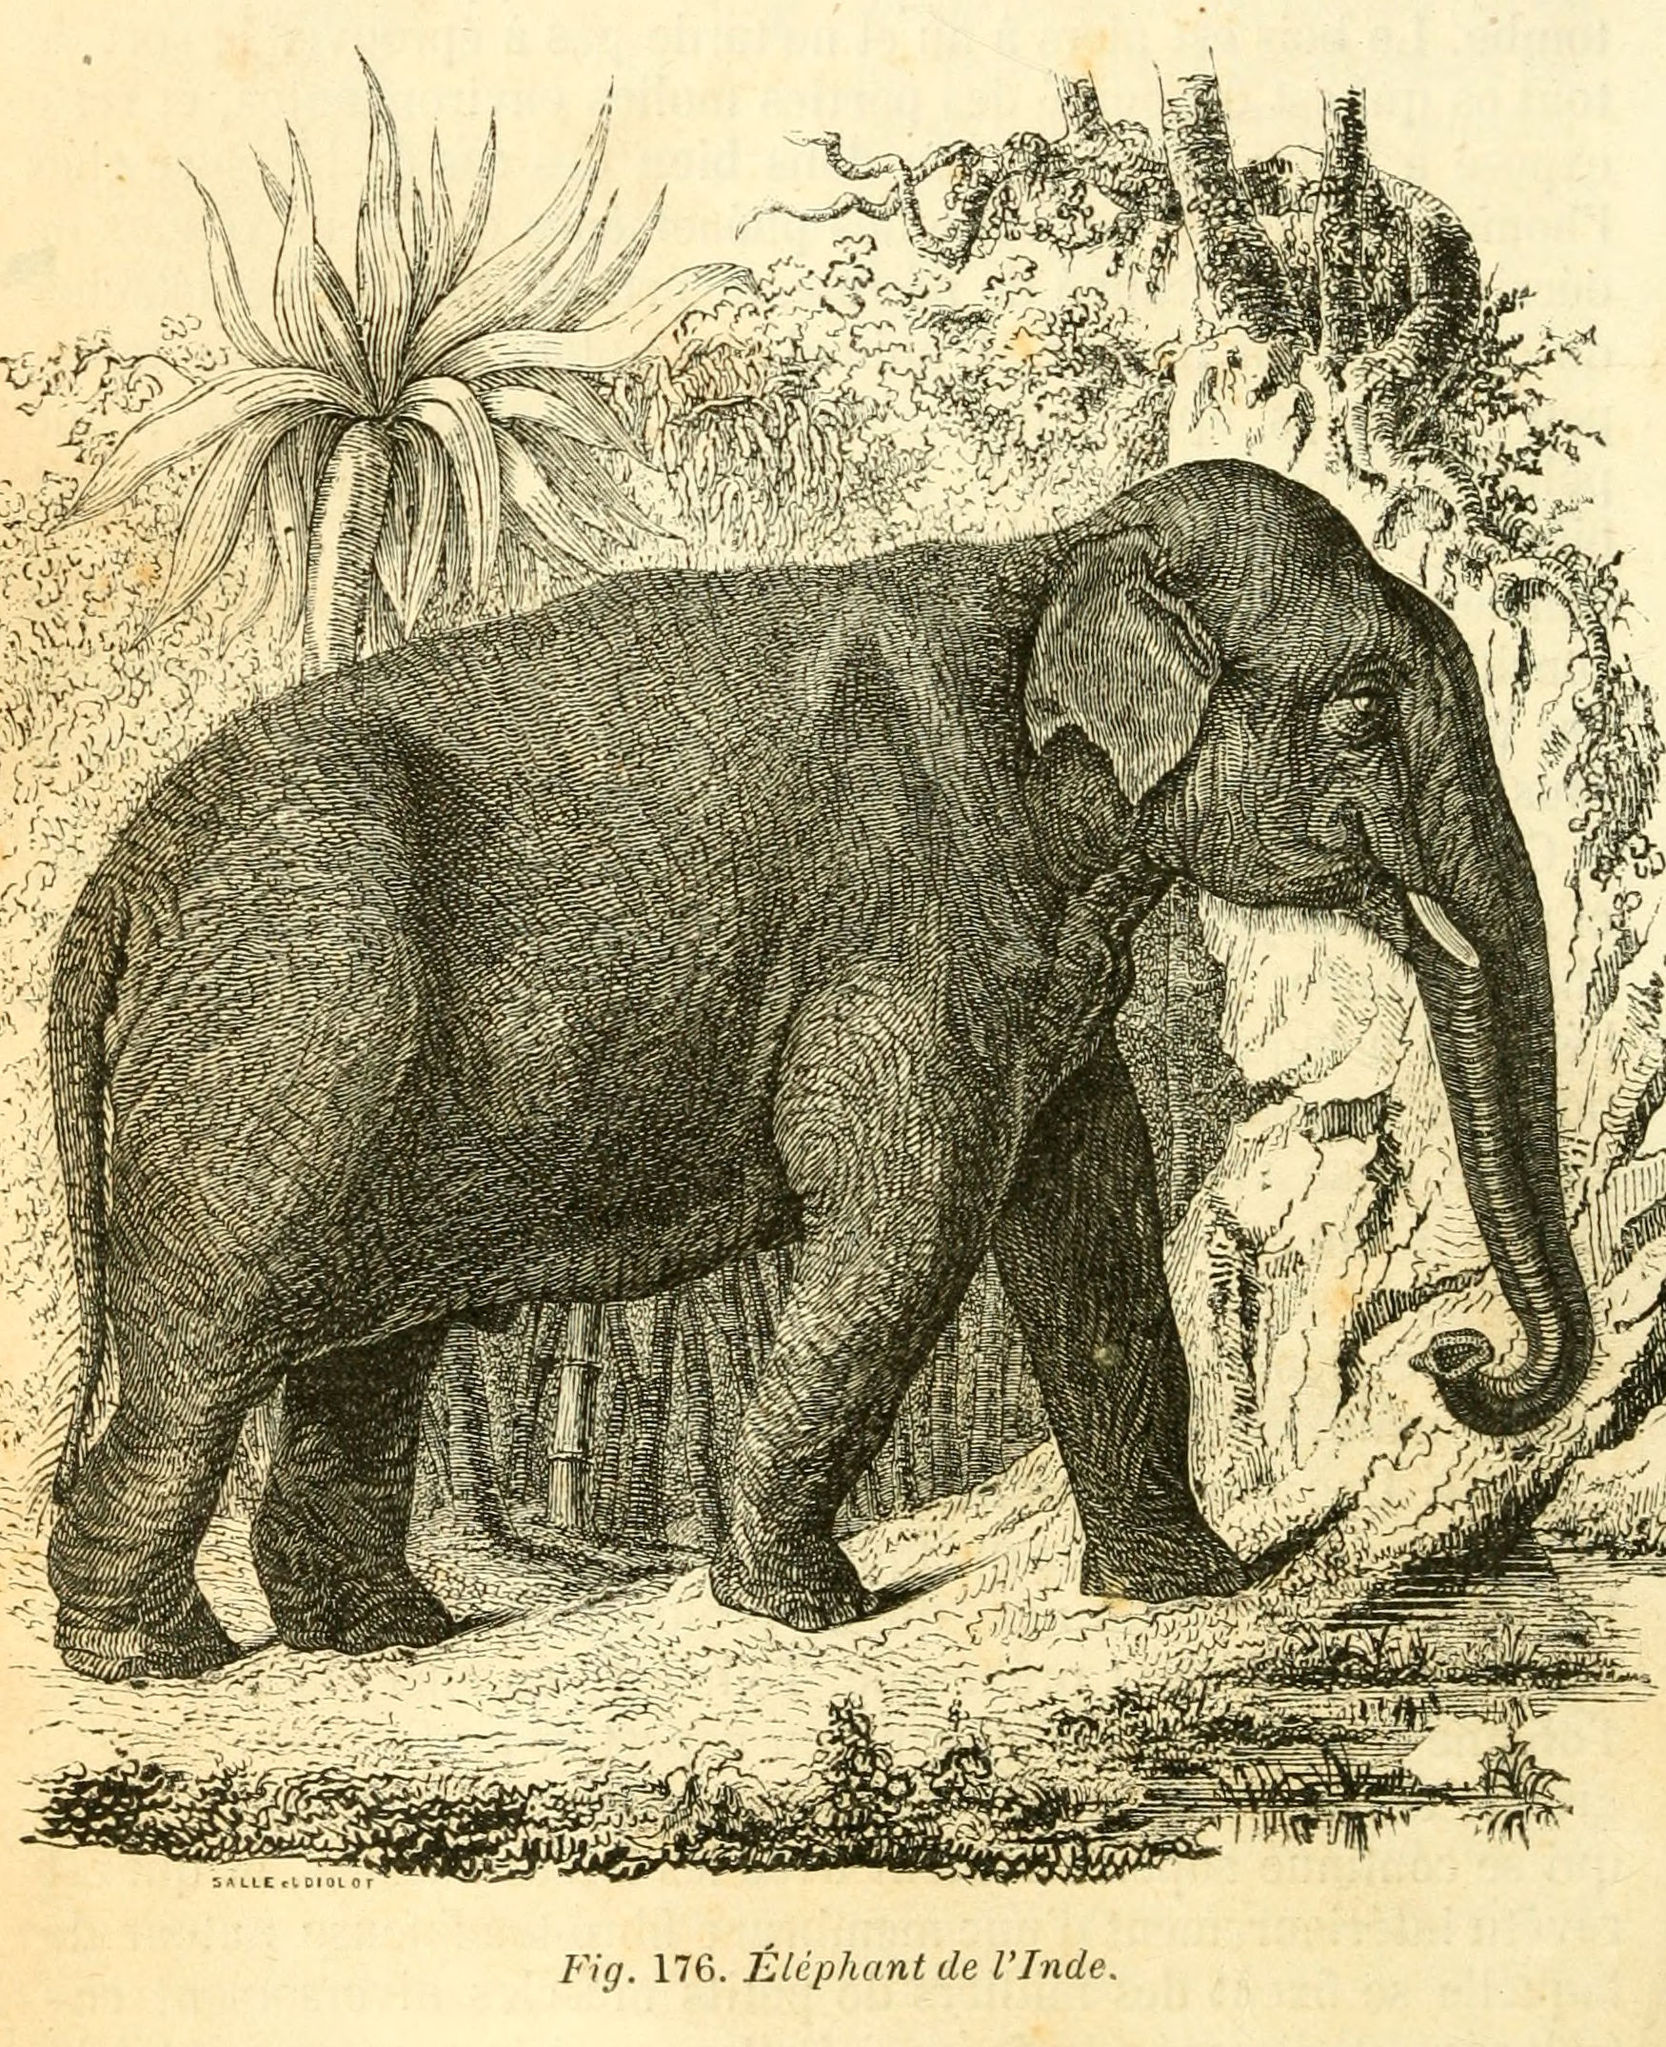 dessins scolaires zoologie dessins scolaires zoologie 336 elephant de l inde gravures. Black Bedroom Furniture Sets. Home Design Ideas